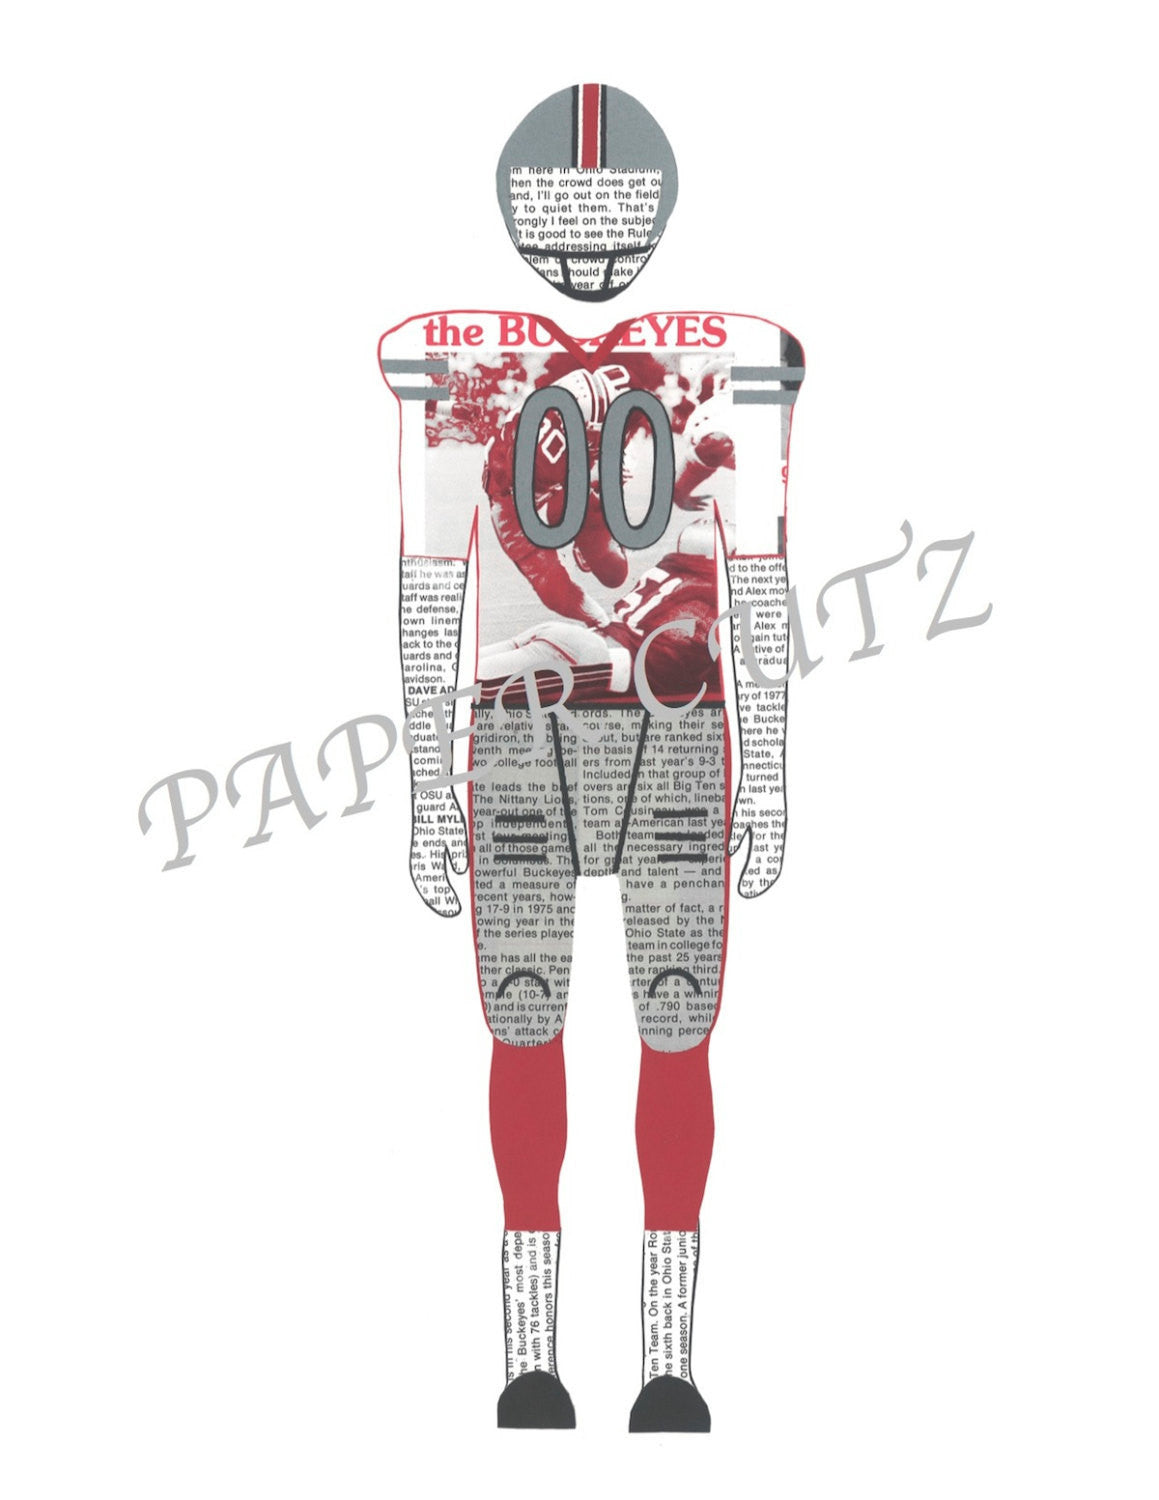 Ohio State Football Player Vintage Print 11 x 17 - Celebrate Local, Shop The Best of Ohio